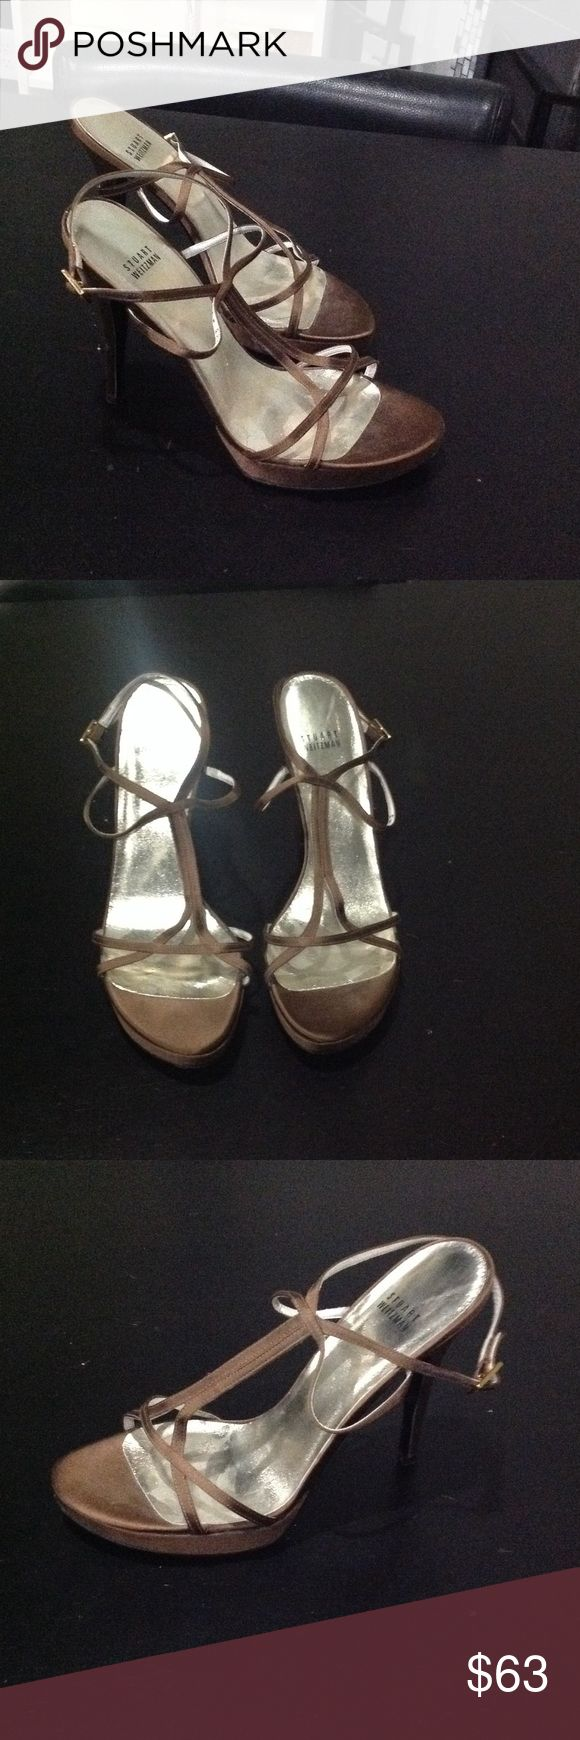 """Strap up heels Gently worn Brown platform 5 inch heels. Note: I want to be clear that I will ship these heels securely but I will not be """"fancy"""" with shipping. I just don't have the time to package my gently used items like a department store.  Please notice this before making your purchase. Stuart Weitzman Shoes Heels"""